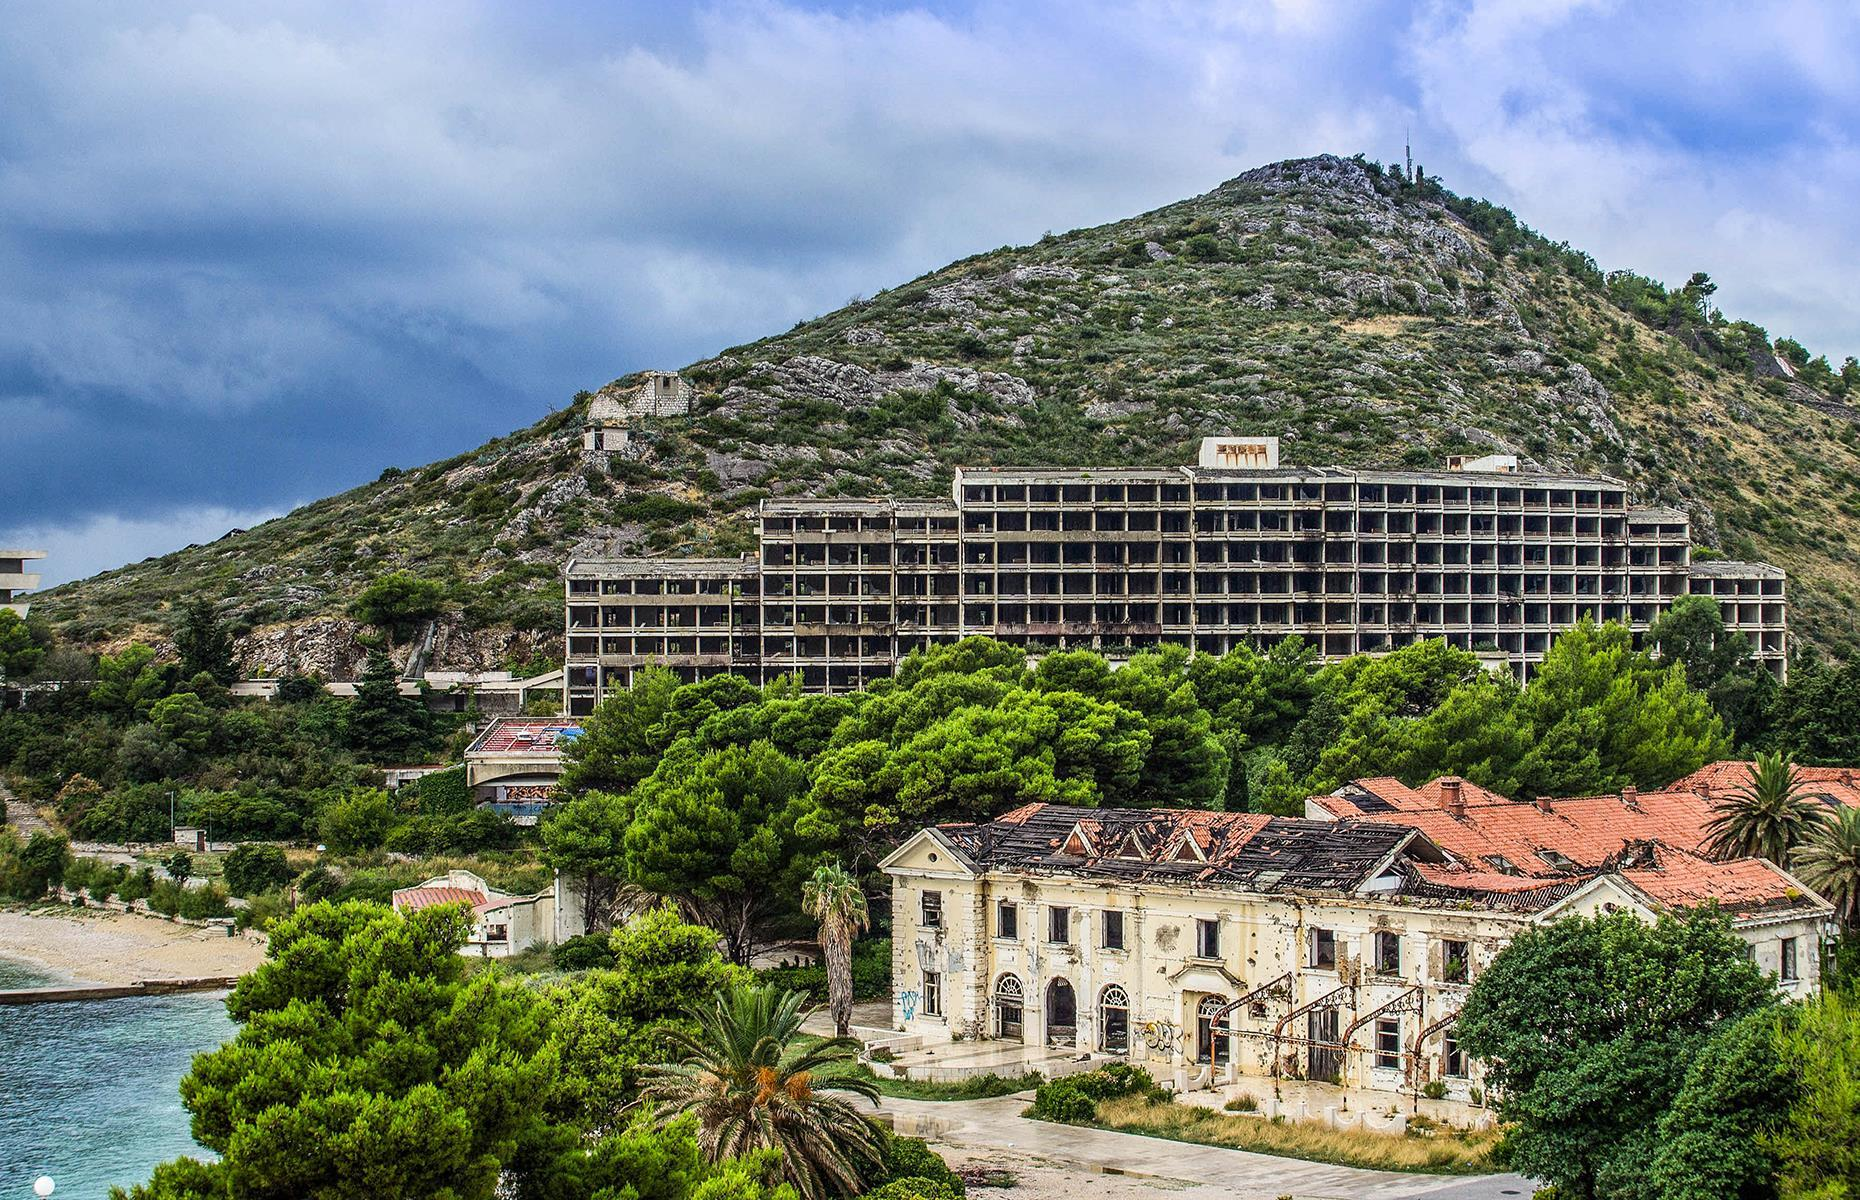 Slide 13 of 70: One of the pioneers of Croatia's tourism, Kupari vacation village was a military resort for the elite of the Yugoslav army from the 1960s. When the Croatian War for Independence broke out in 1991, the army fled, and the resort was heavily bombed.